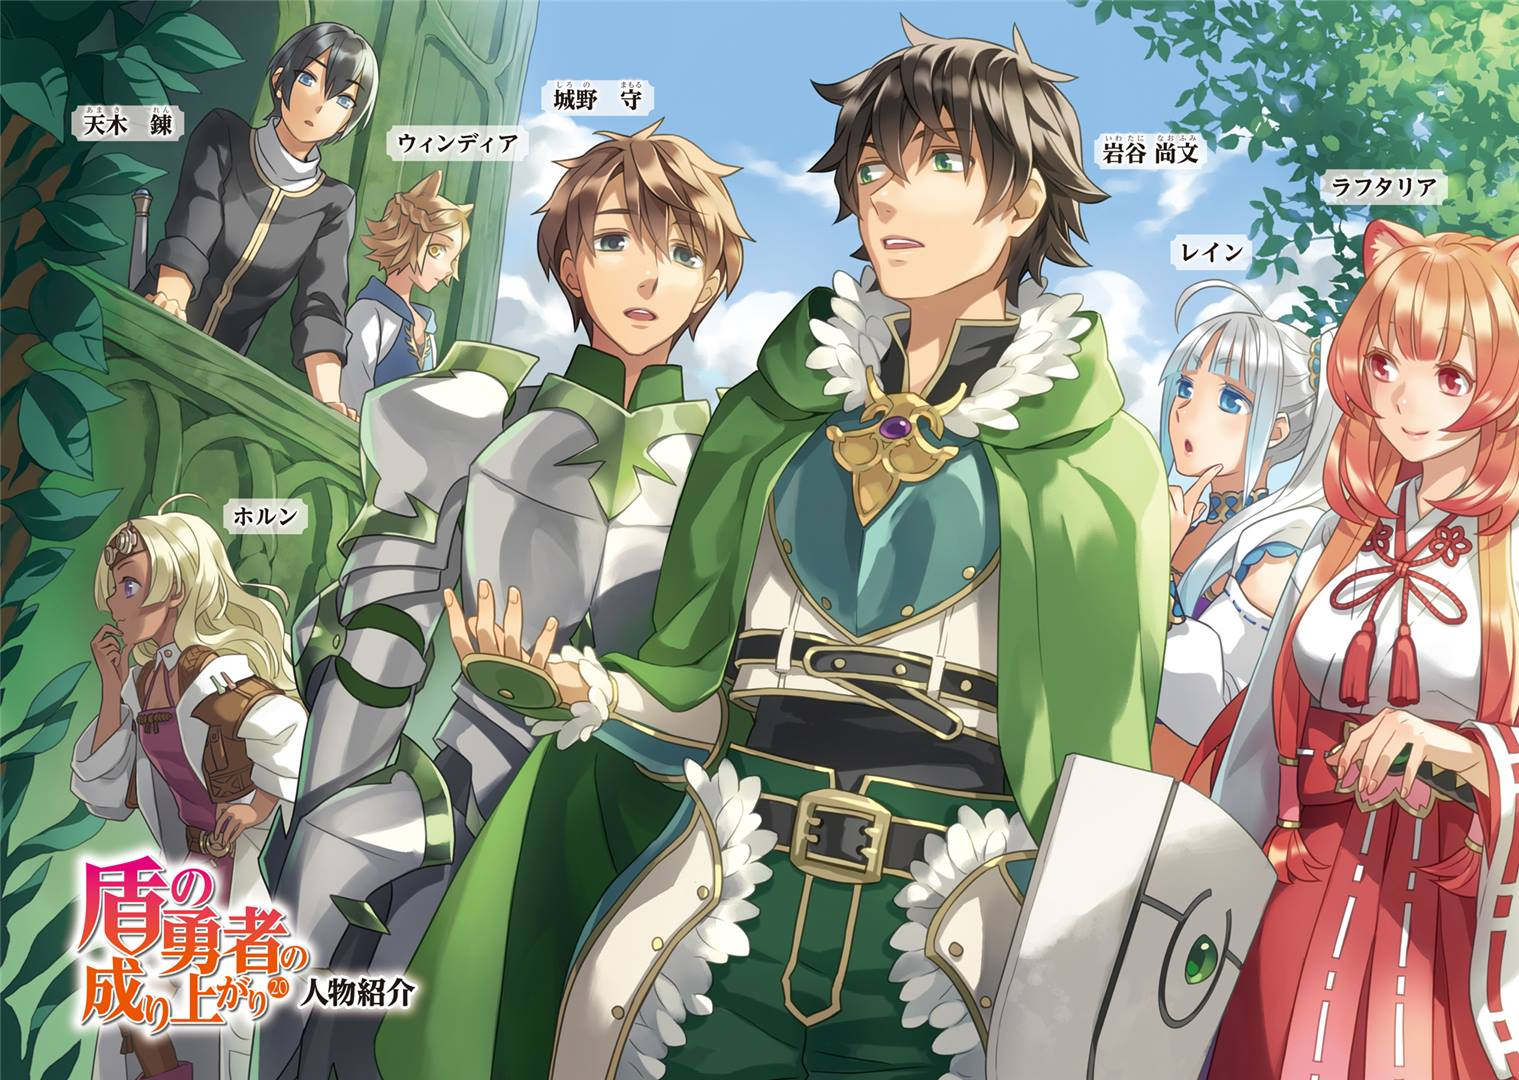 Tate no Yuusha no Nariagari, Jepang, Action, The Rise of the Shield Hero, 盾の勇者の成り上がり, Adventure, Comedy, Drama, Fantasy, Harem, Romance, Seinen, Web Novel, Bahasa Indonesia, Indo